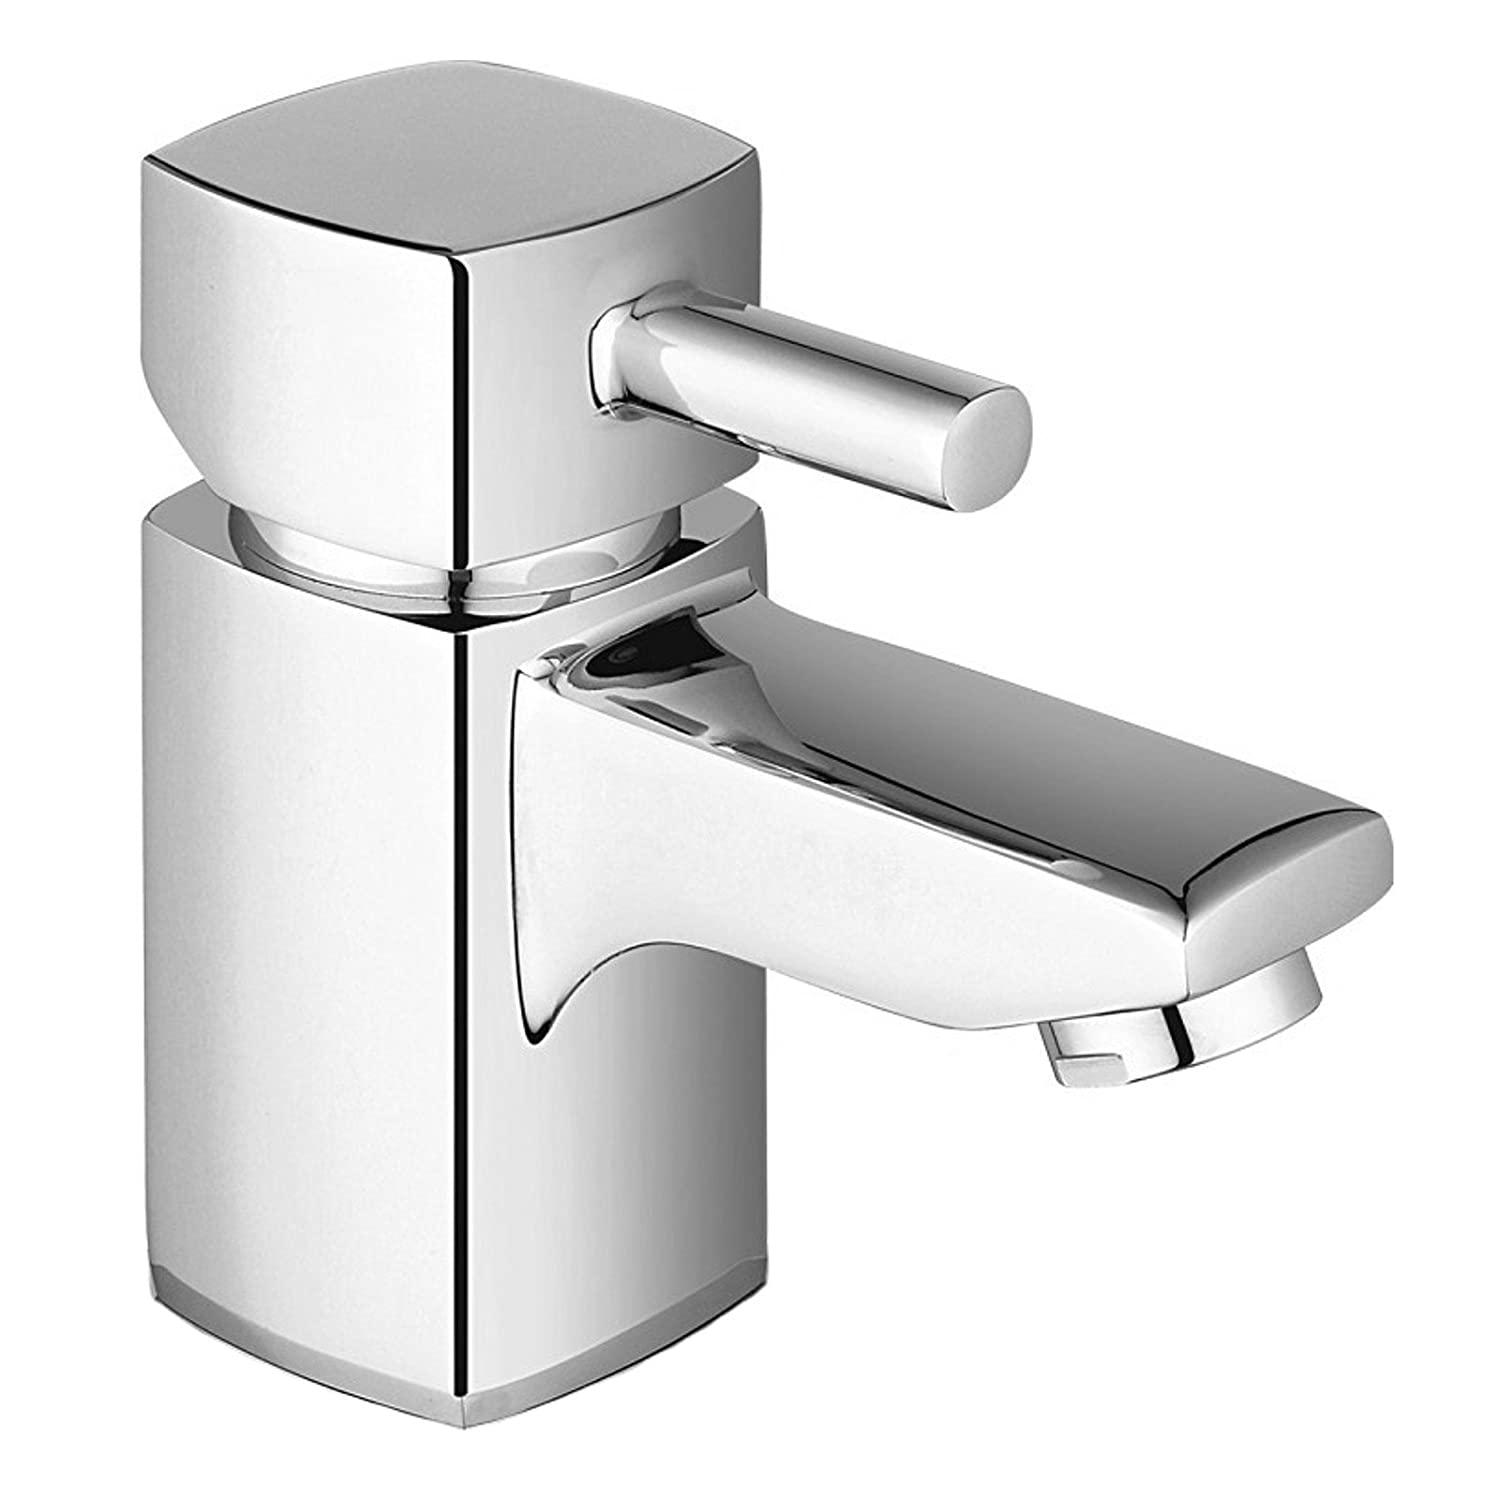 taps vola logo kitchen and bathroom fittings faucets mixers hansa fixtures